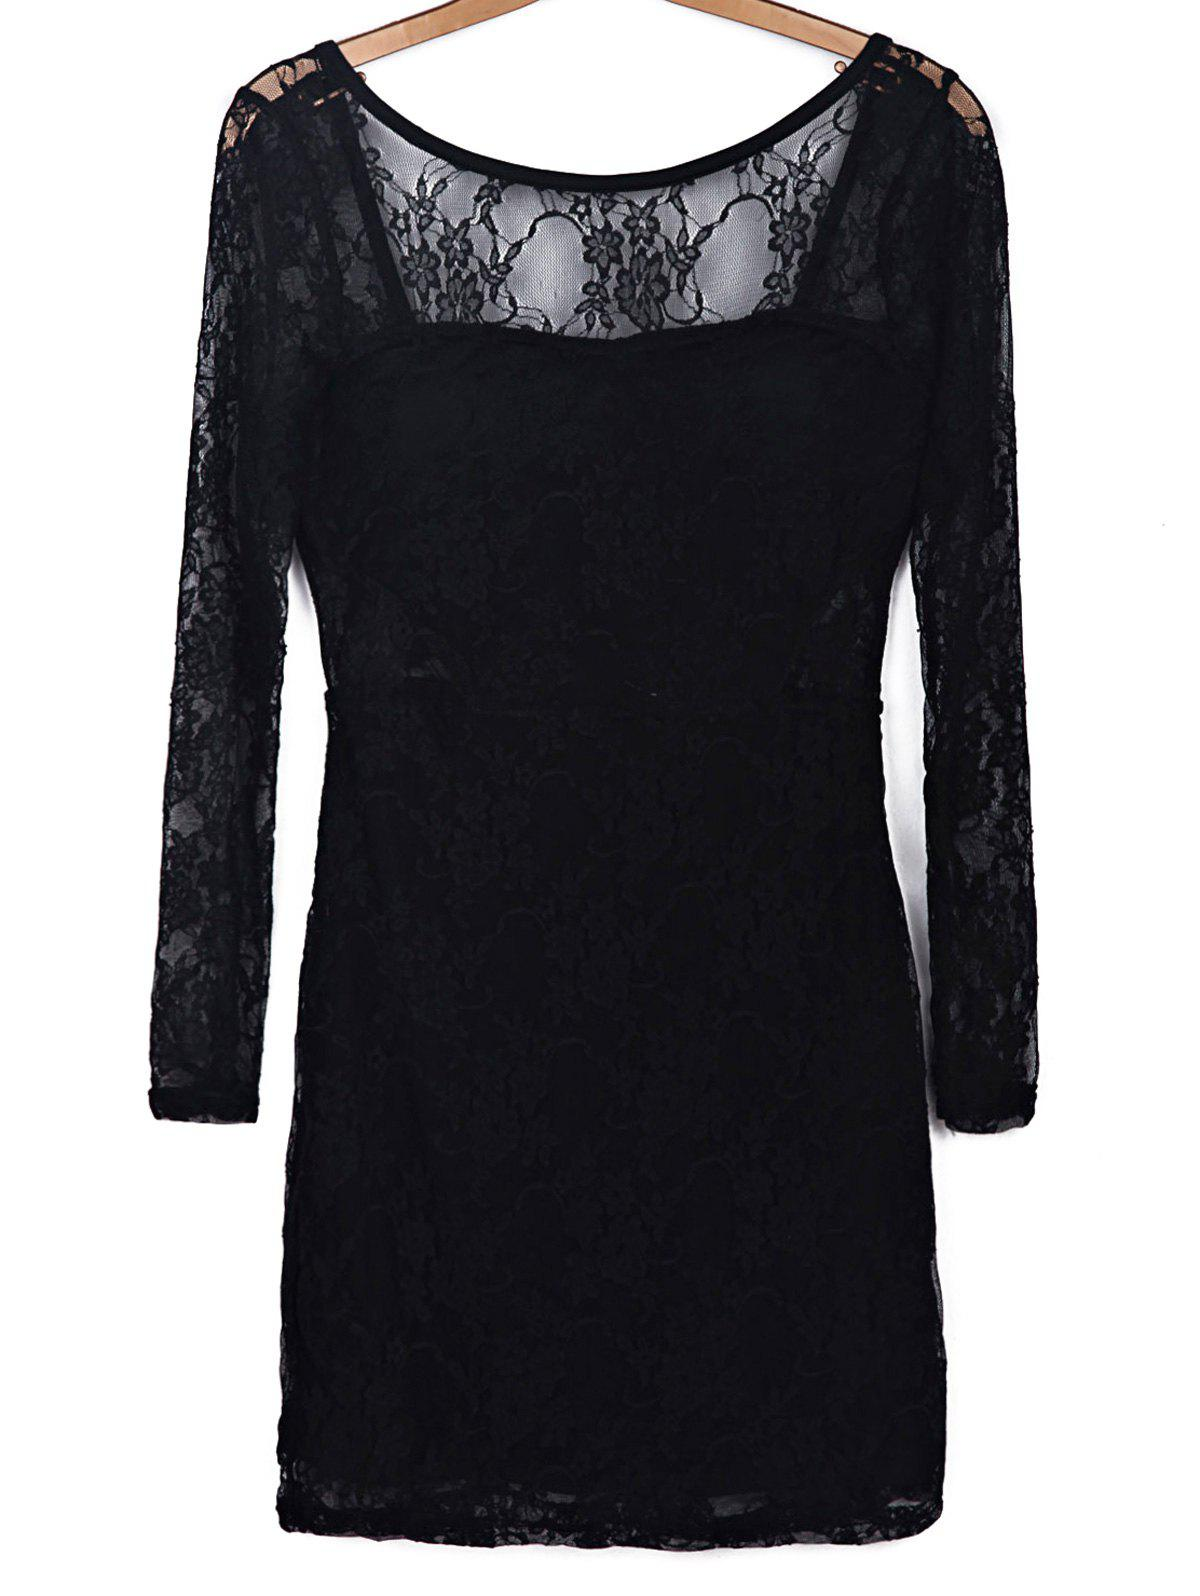 Trendy Black Hollow Out Long Sleeve Backless Bodycon Lace Dress For Women - BLACK S